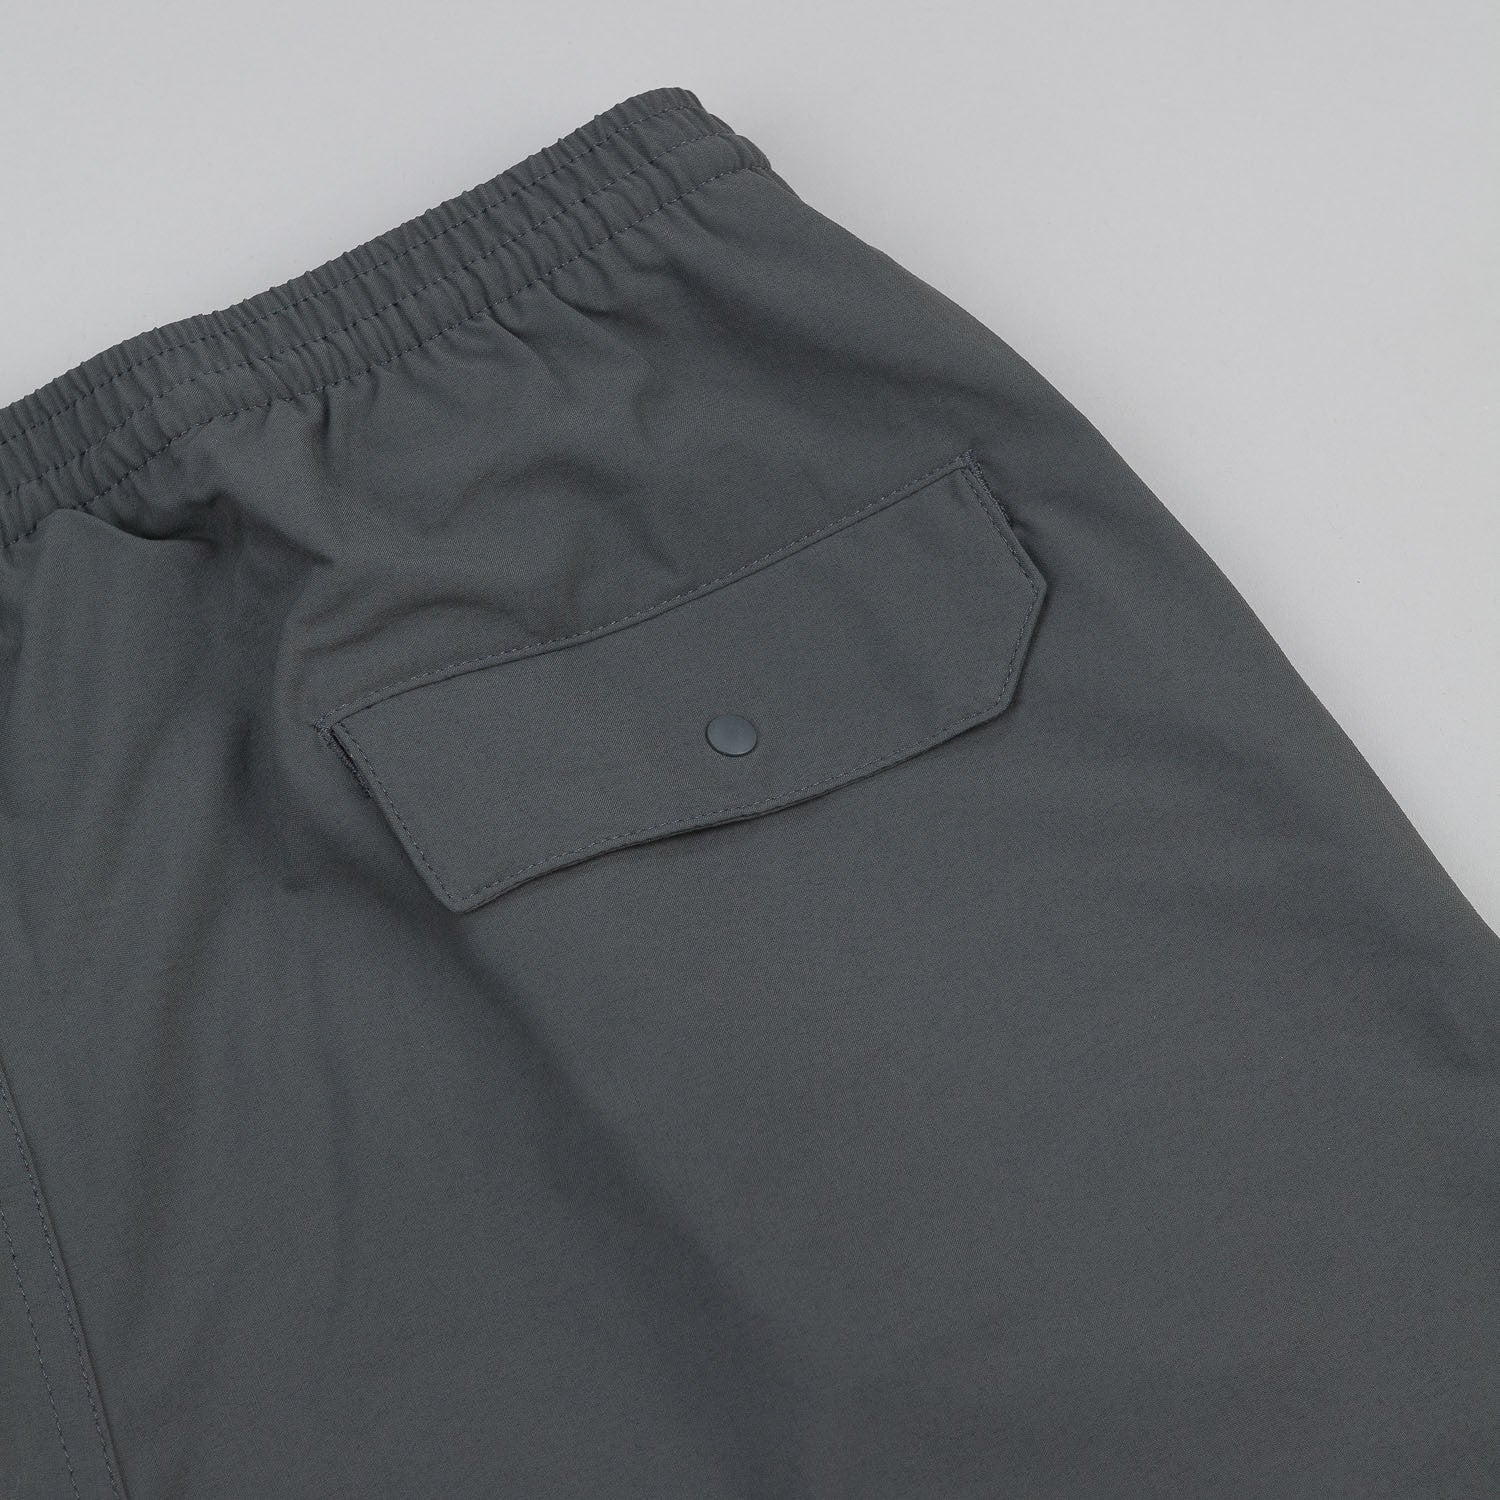 "Patagonia Baggies Stretch Shorts 9"" - Forge Grey"